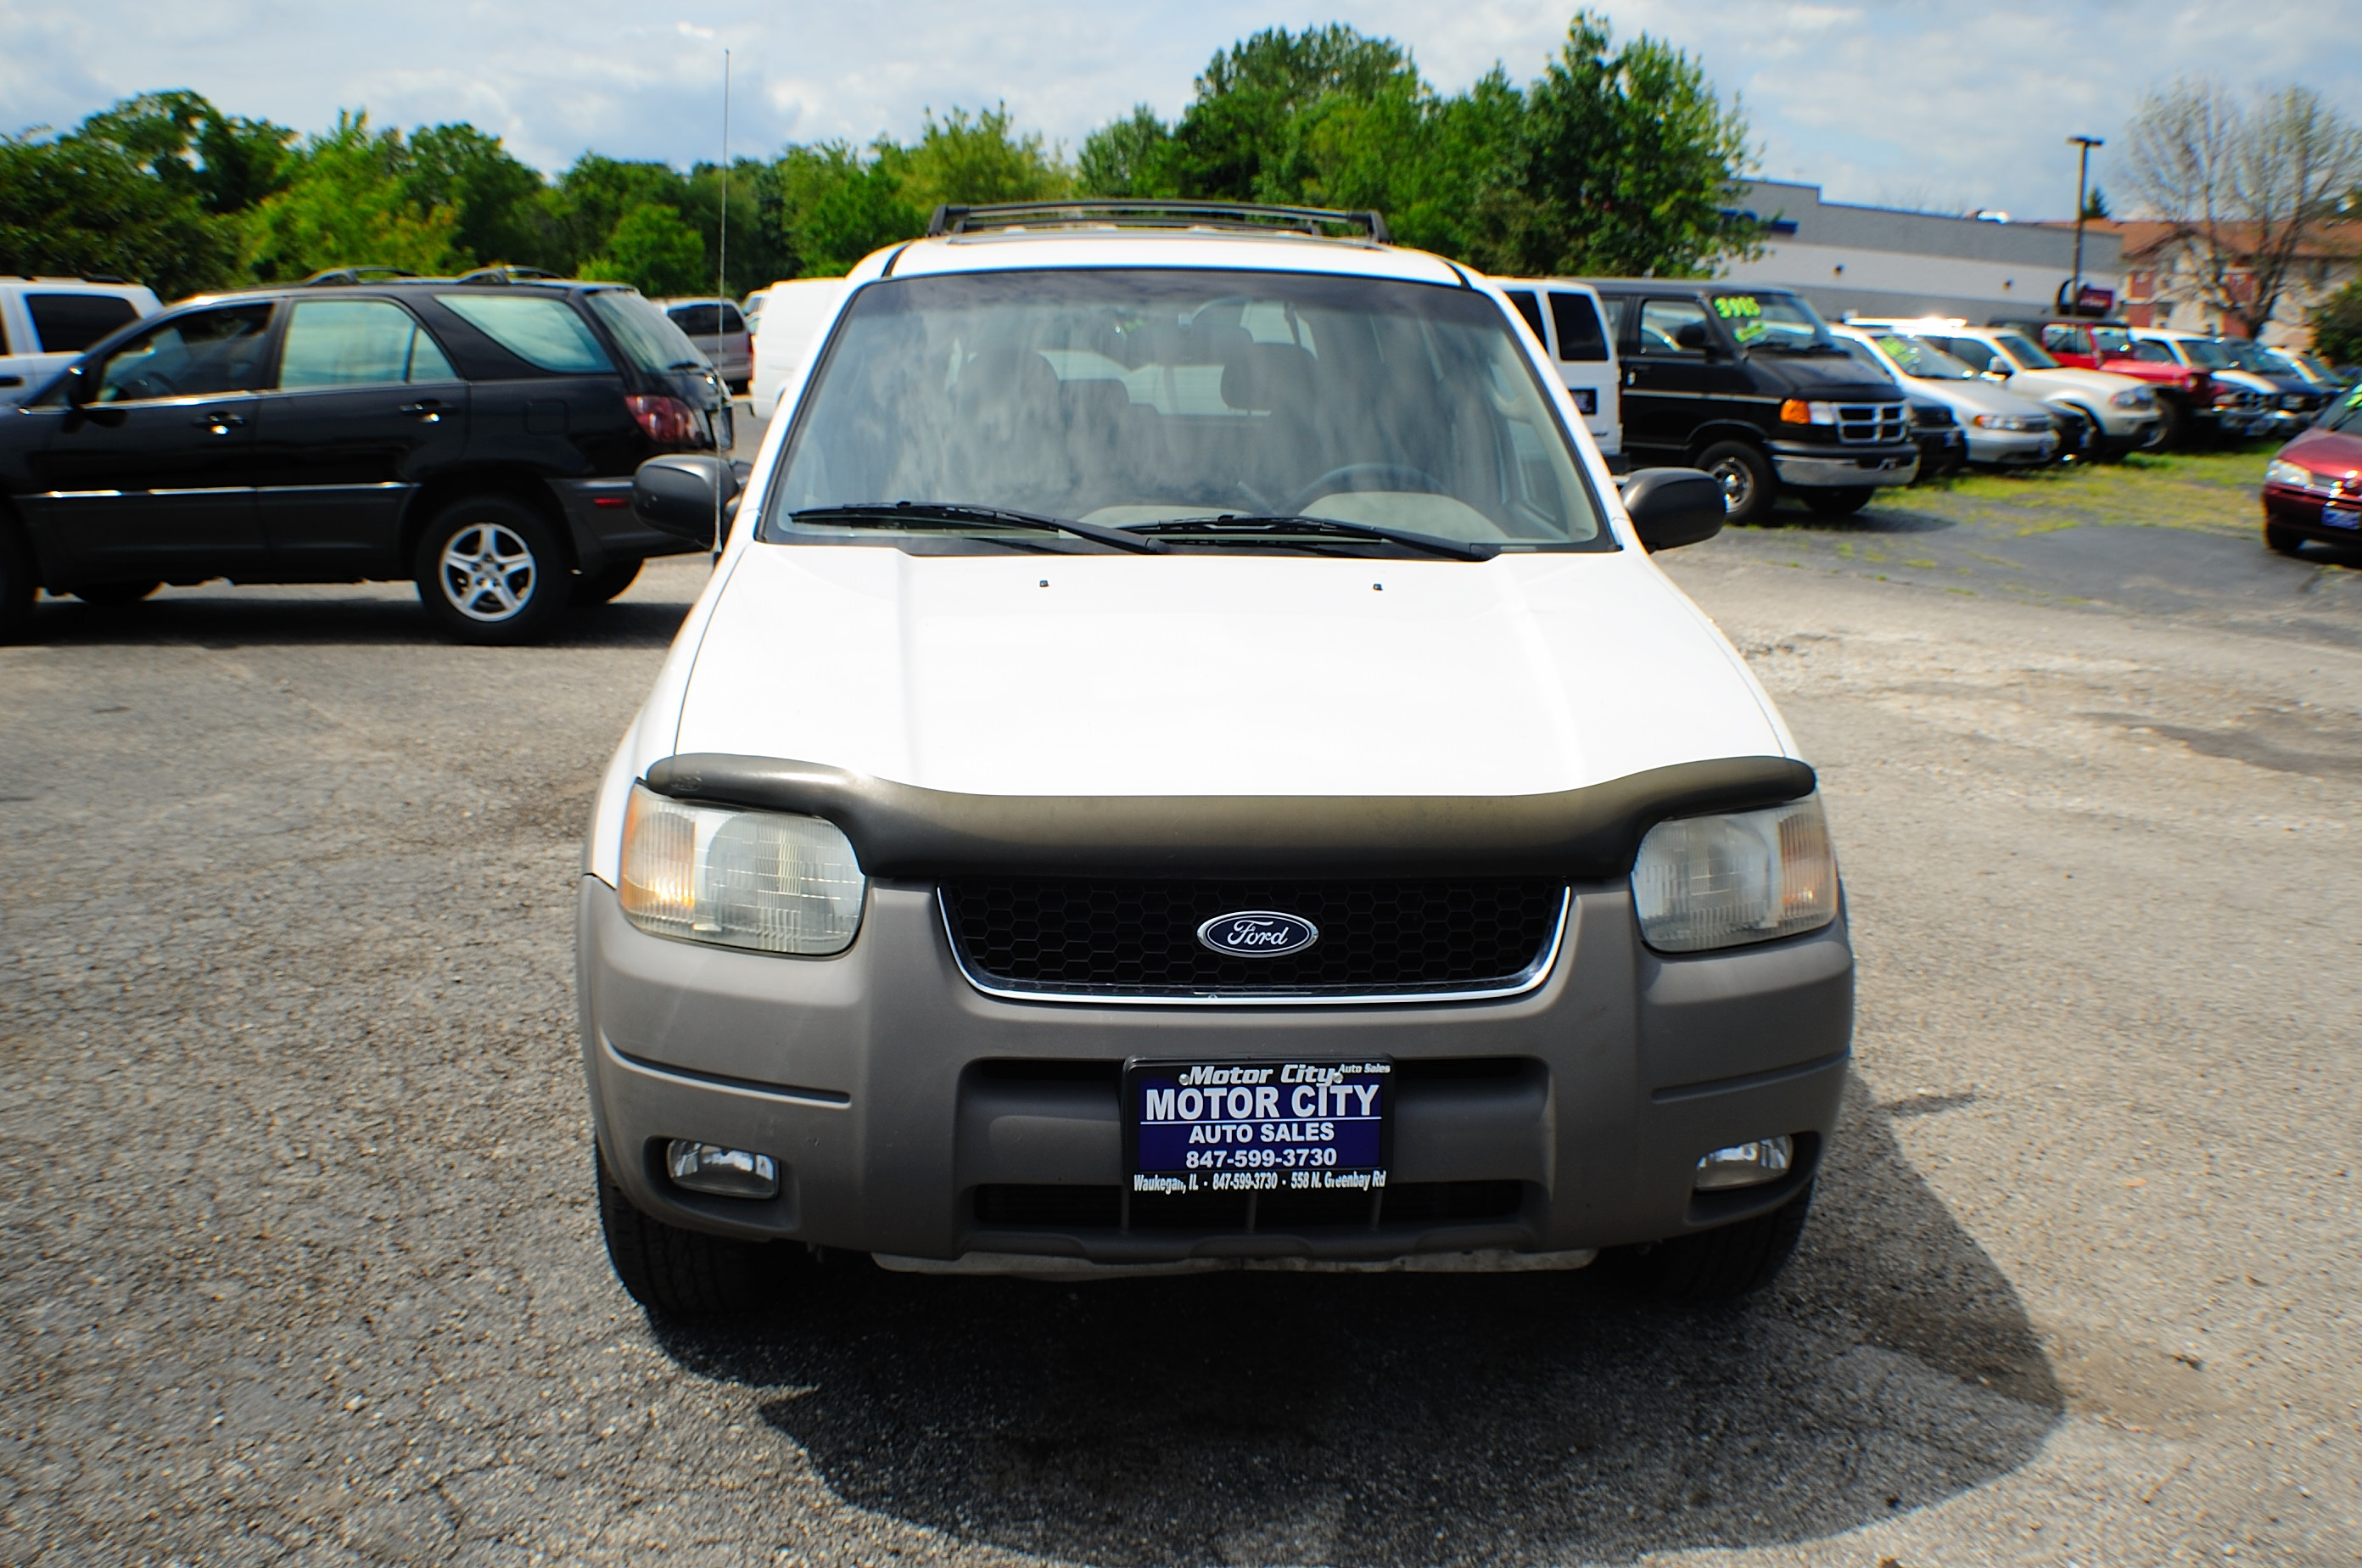 2001 Ford Escape XLT White 4x4 SUV Used Car Sale Libertyville Beach Park